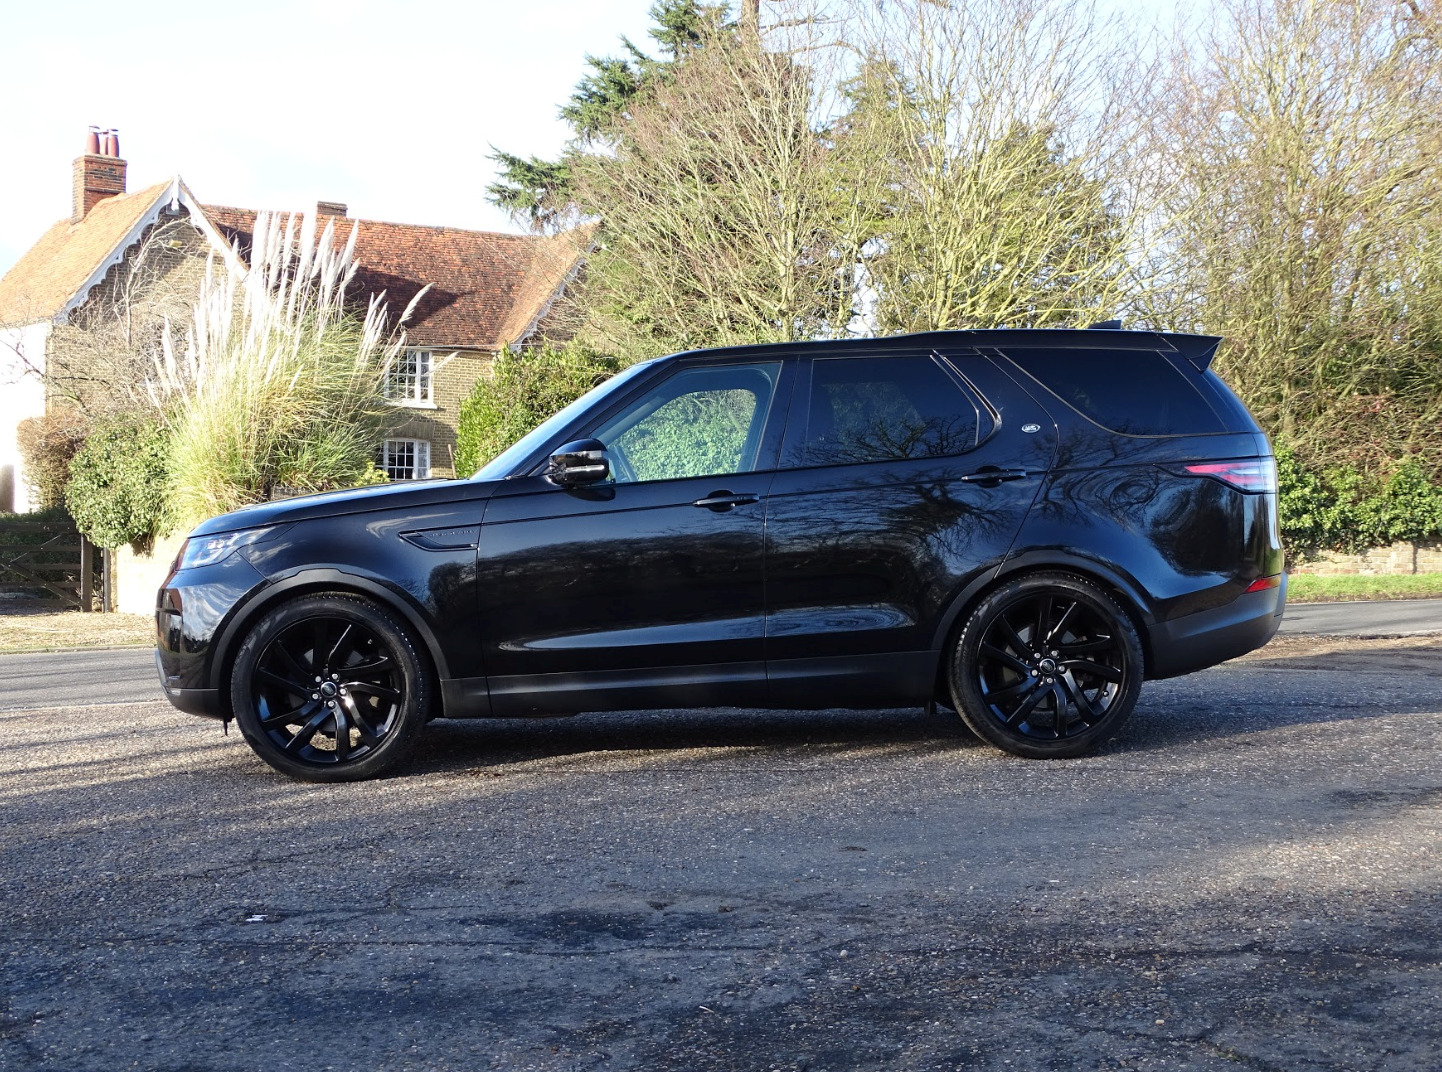 2017 Land Rover  DISCOVERY  3.0 SDV6 HSE 7 SEATER AUTO  41,948 For Sale (picture 7 of 13)